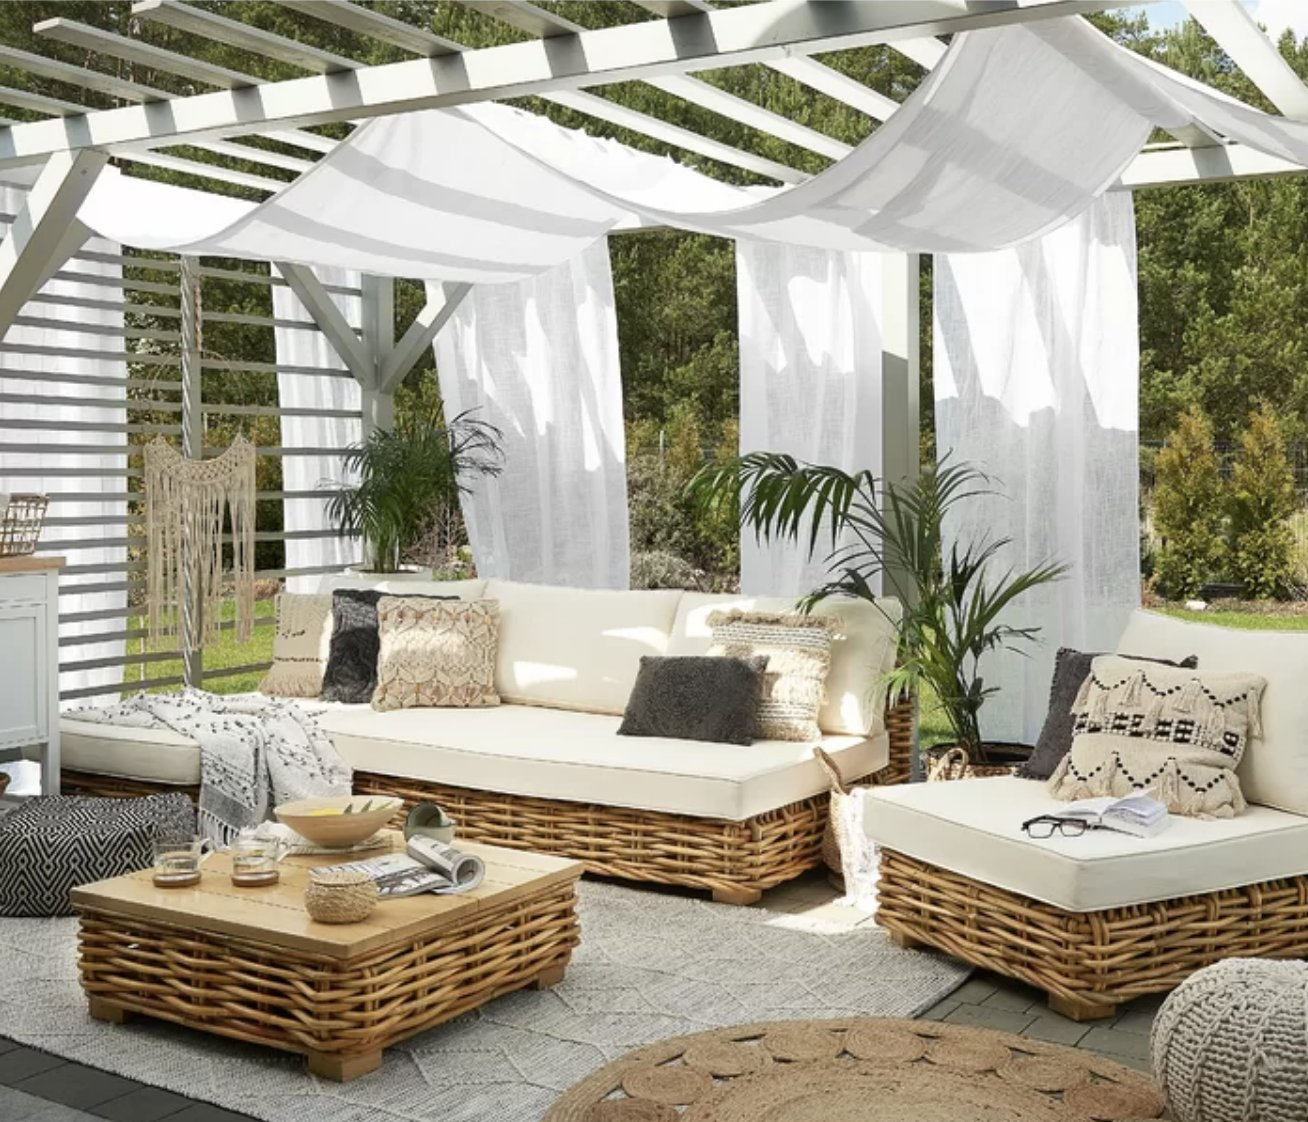 Beautiful outdoor area with canopy.